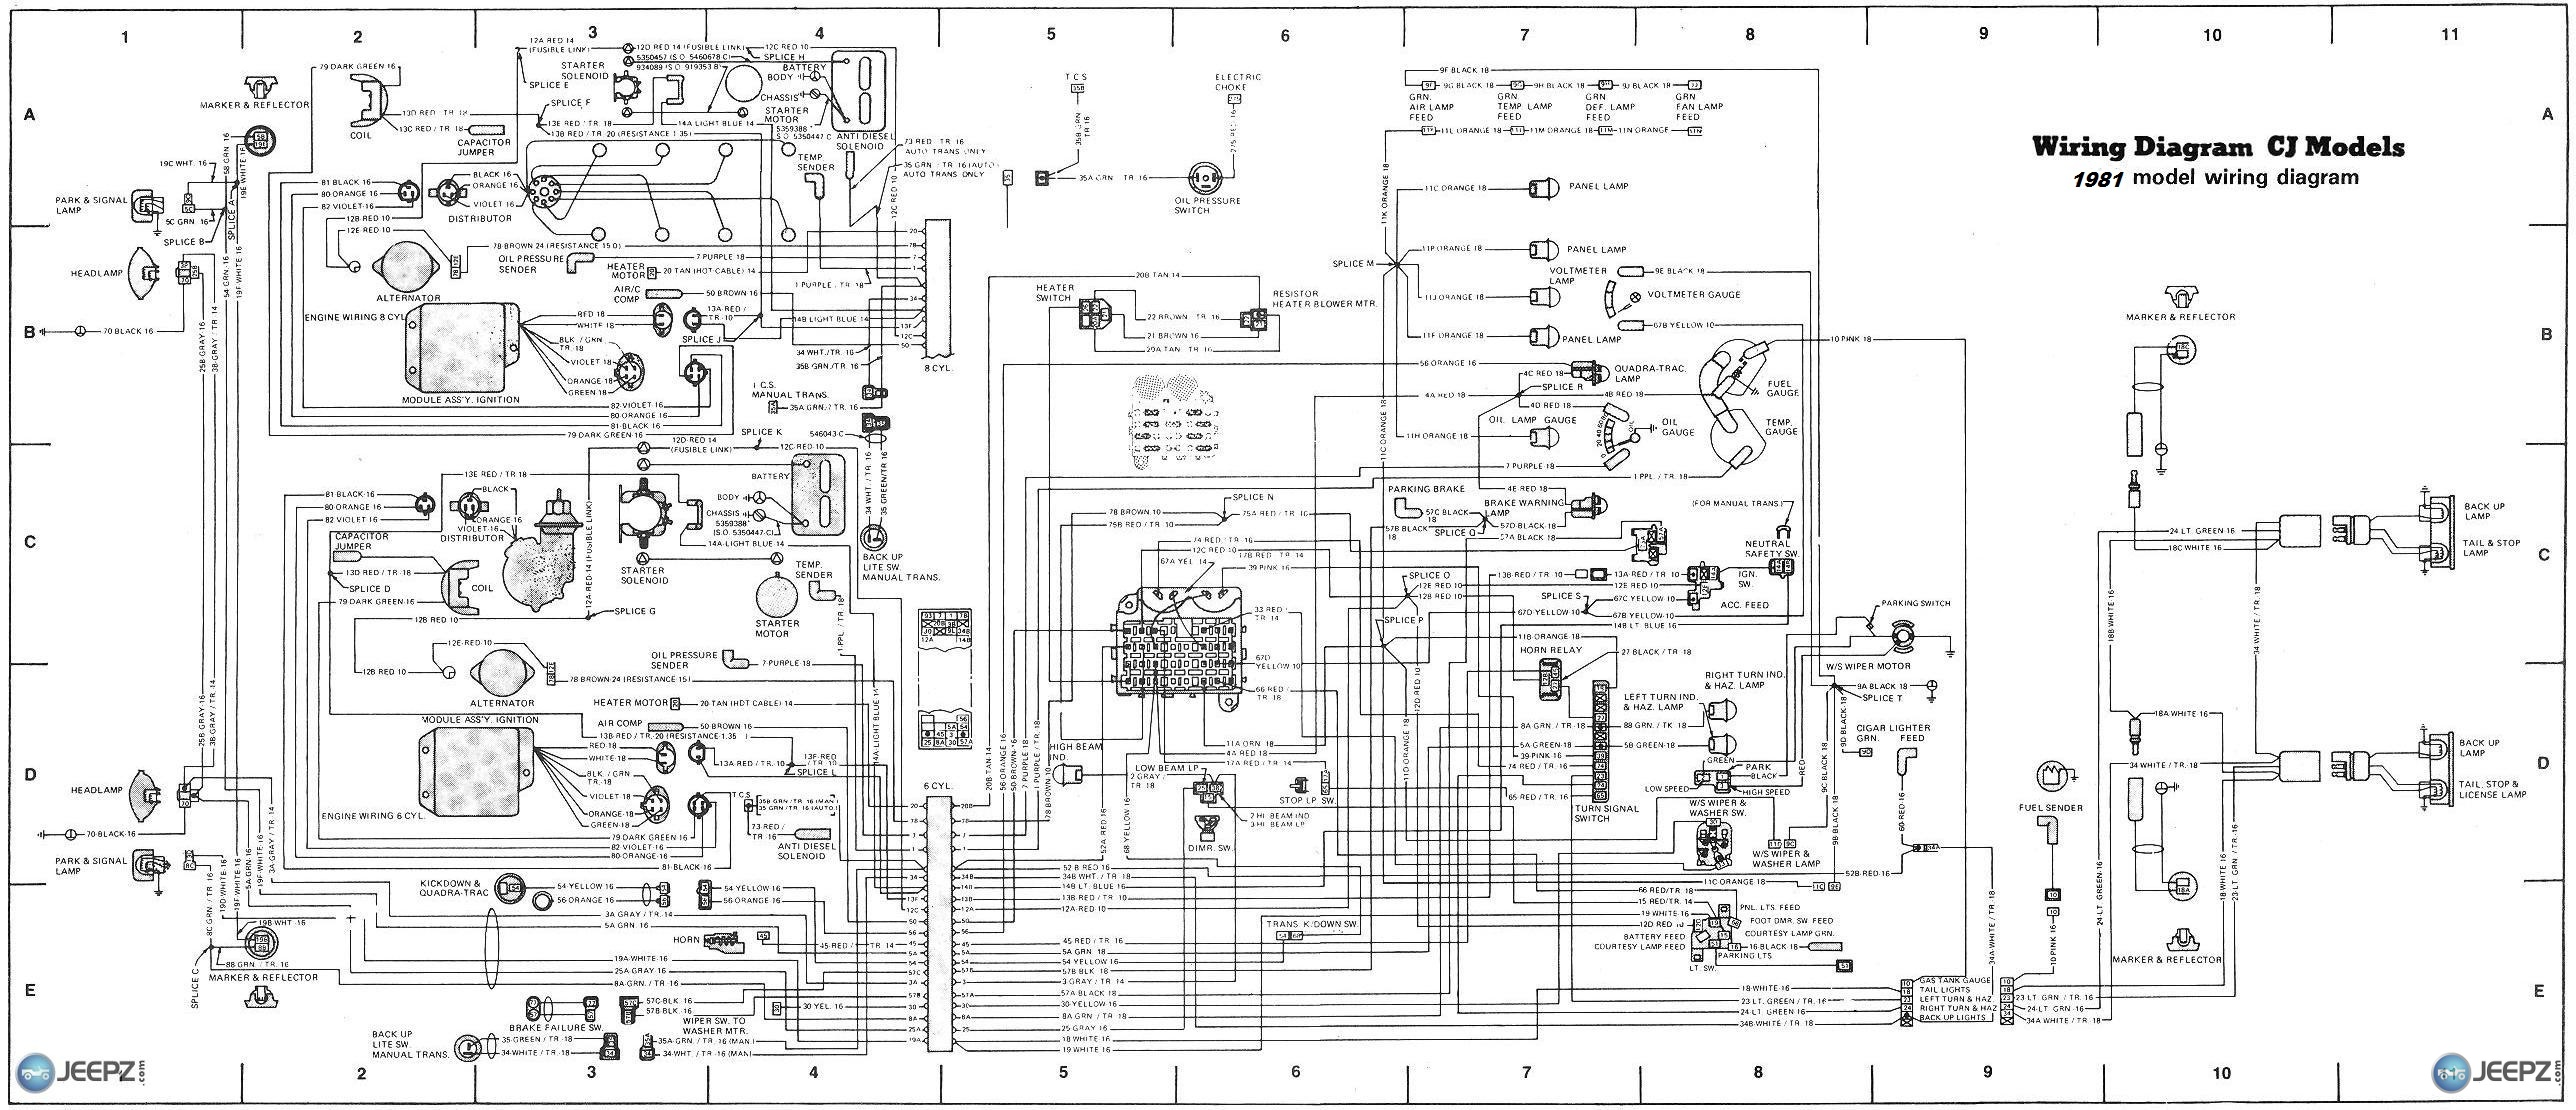 Wired Diagram | Wiring Diagram on universal remote control diagram, arcade coin slot diagram, 1066 international wiring diagram, universal fuel pressure regulator diagram, gm turn signal switch wiring diagram, universal motor diagram, universal alternator diagram, universal ford wiring harness, universal speakers, power supply circuit diagram, universal relay diagram, universal drive shaft diagram, universal ignition diagram, 1964 ford mustang headlight wiring diagram, painless wiring diagram, universal power supply diagram, water supply diagram,